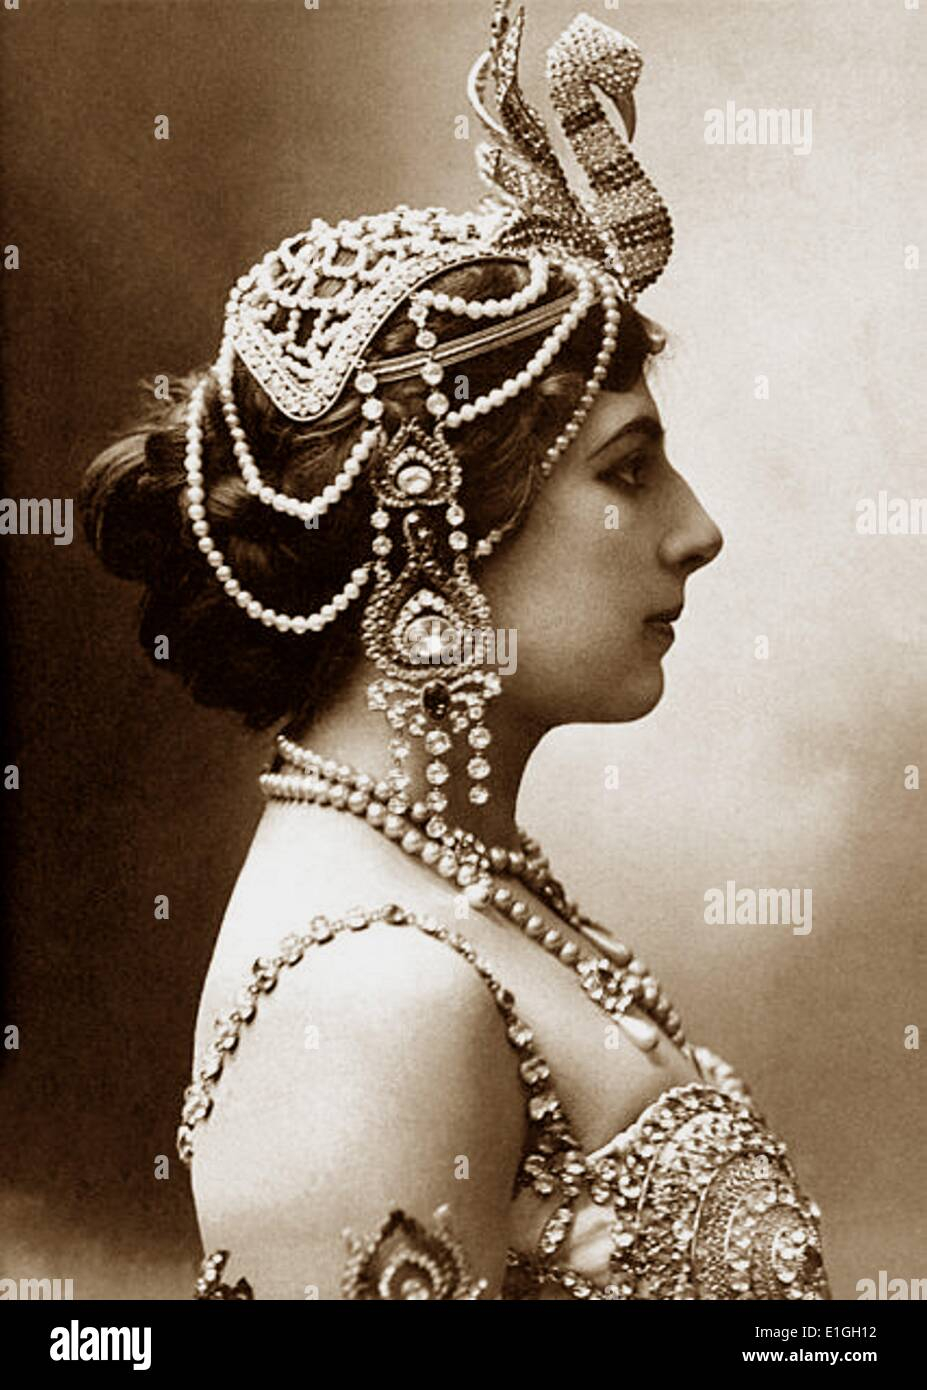 Margaretha MacLeod, better known by the stage name Mata Hari, 1876-1917 - Stock Image